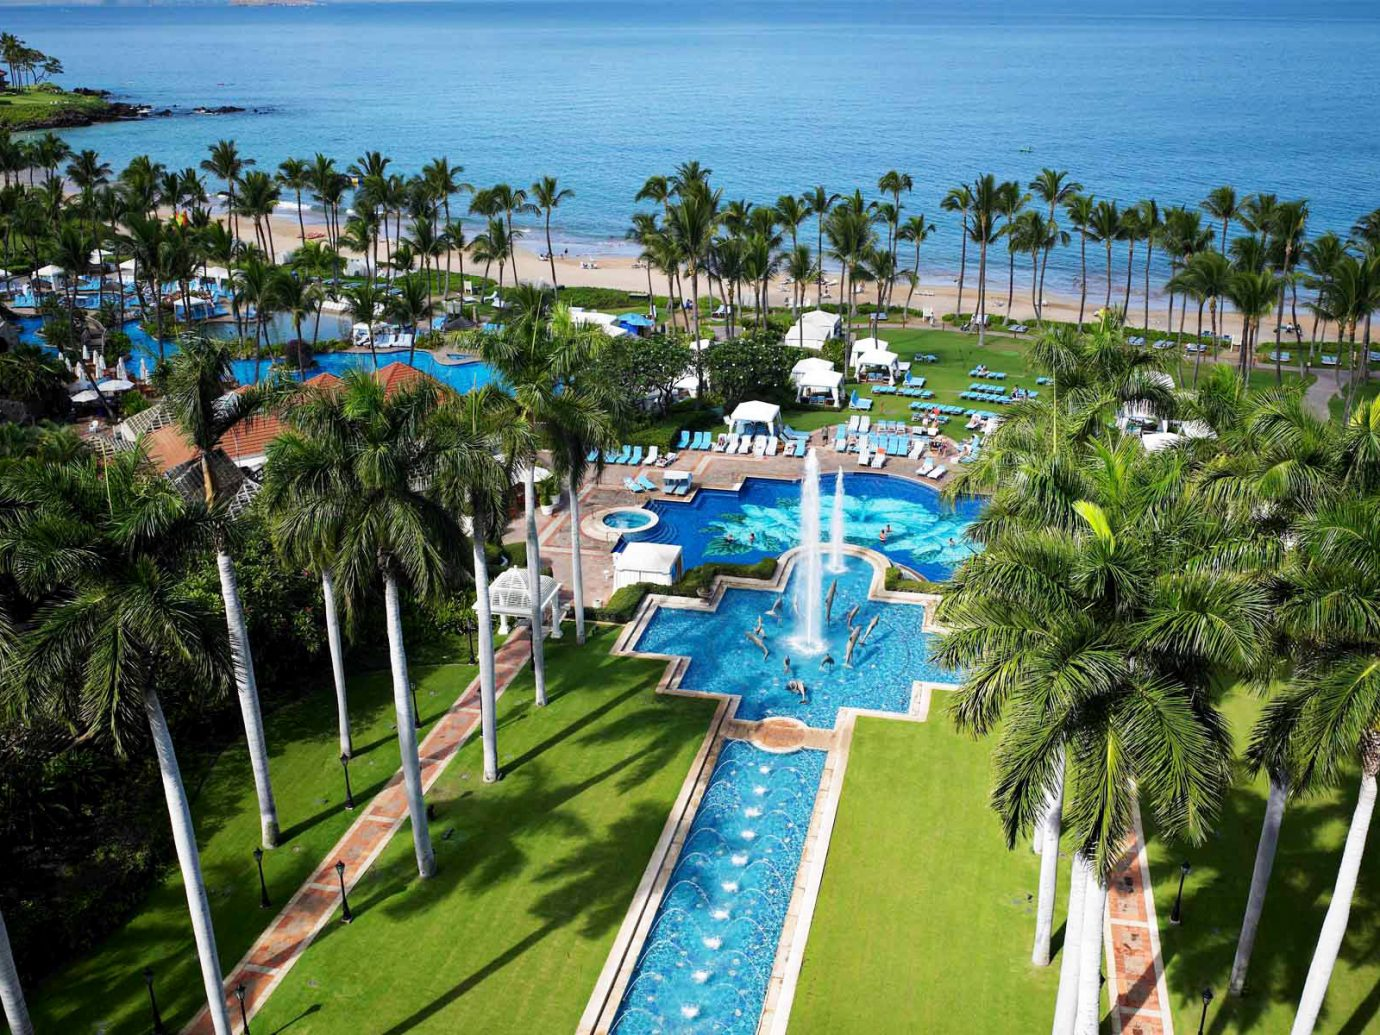 Exterior Grounds Hotels Lounge Luxury Modern Pool Romance tree outdoor leisure Resort vacation walkway tourism amusement park arecales estate park Water park overlooking lush